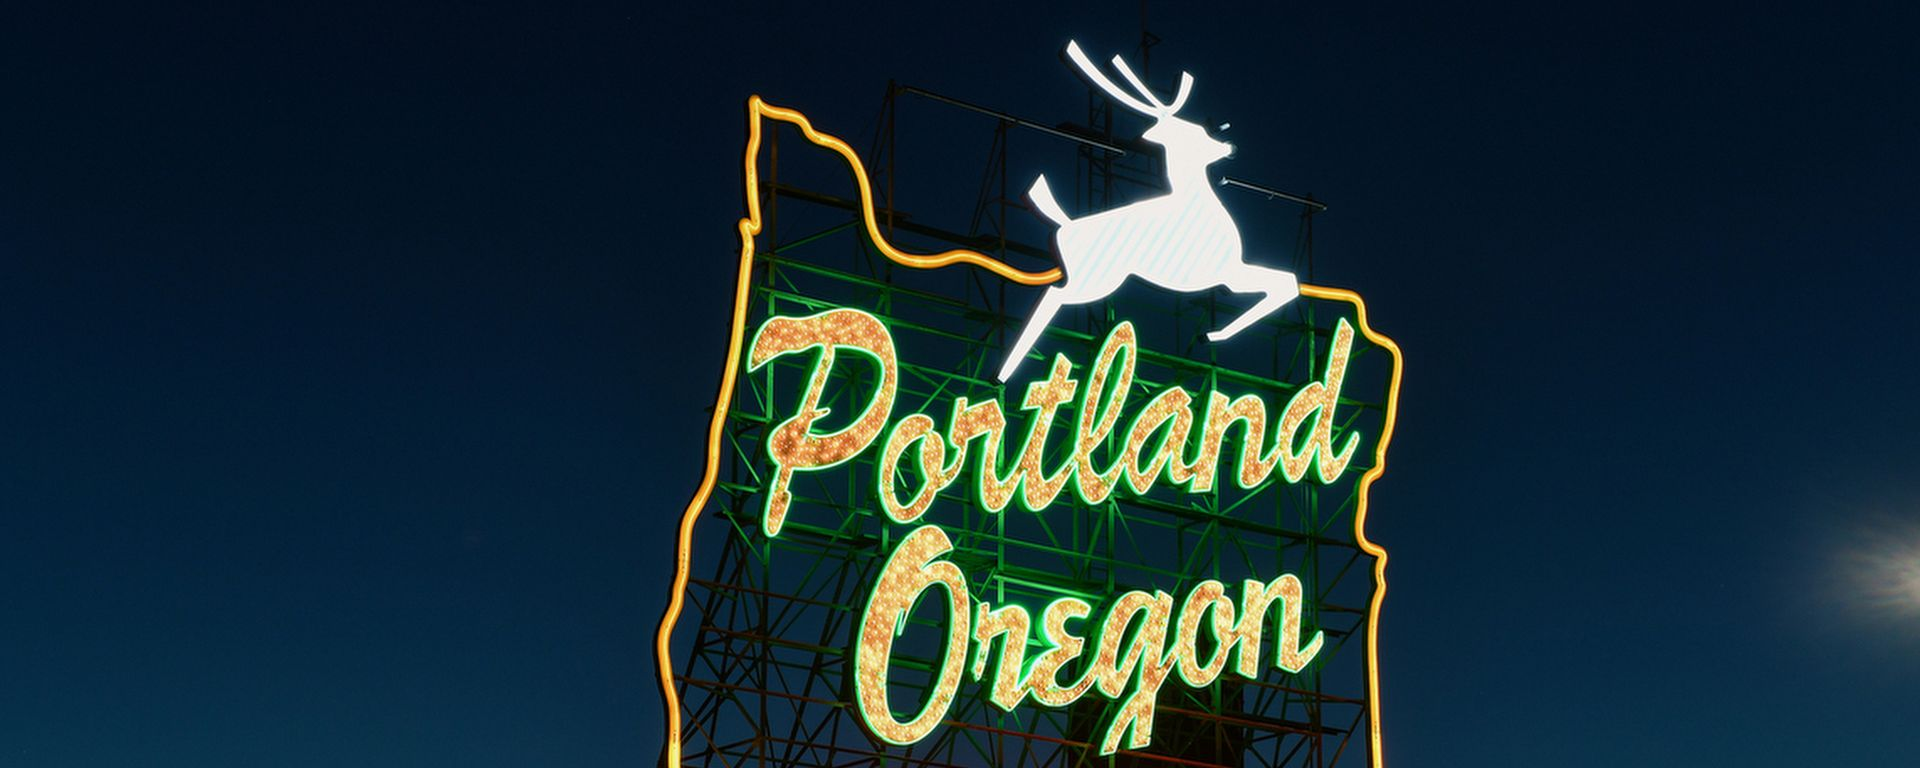 Portland White Stag Sign